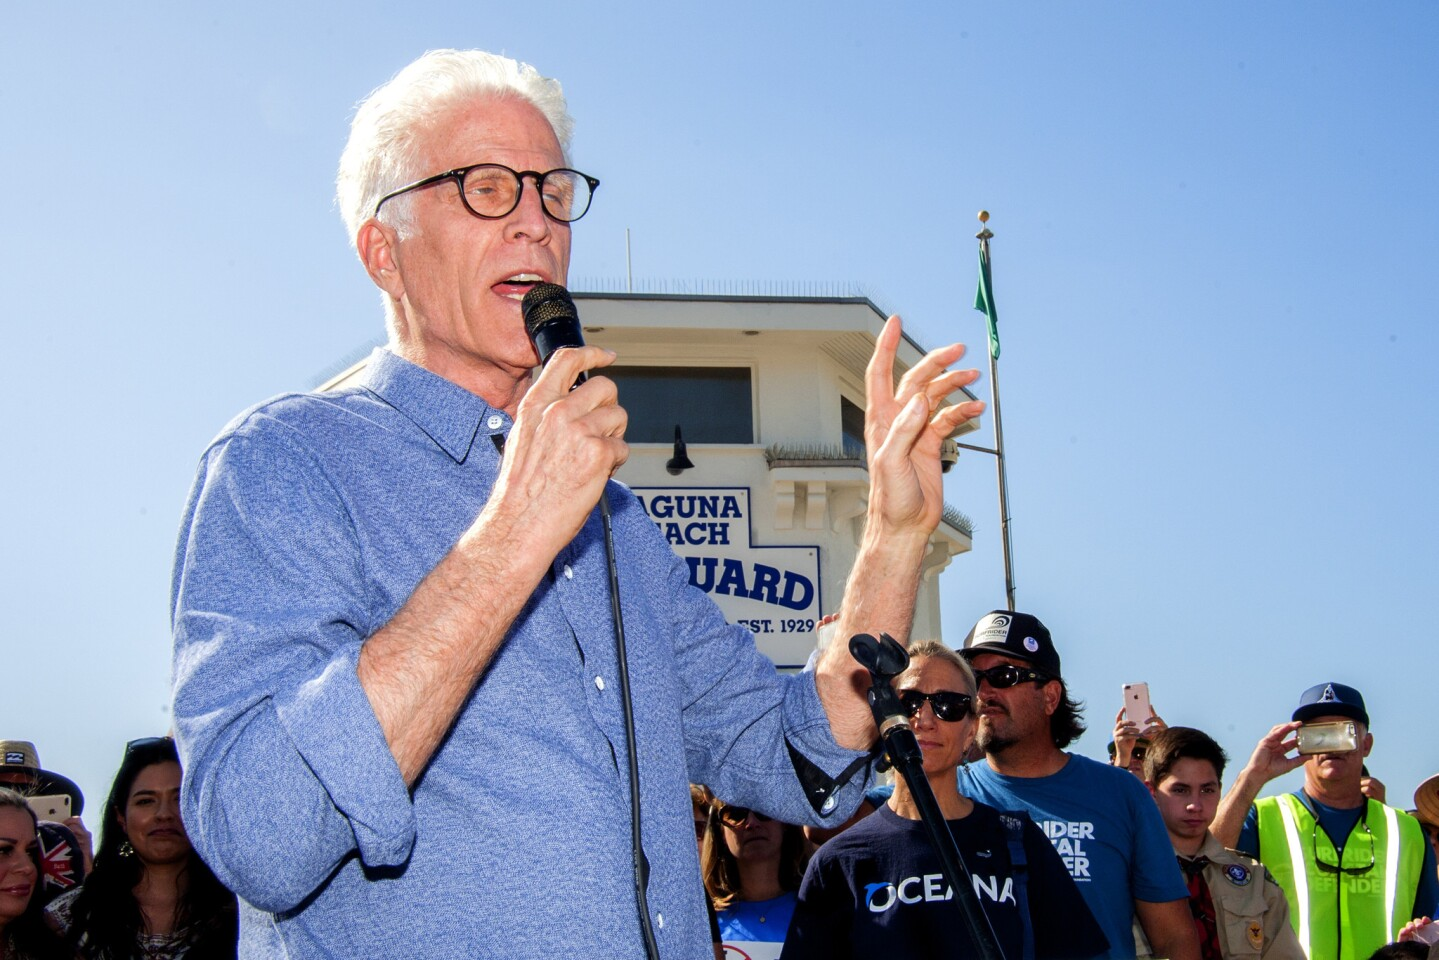 Oceana board member and actor Ted Danson speaks at the rally at Main Beach in Laguna Beach on Saturday. The rally was held to  oppose President Trump's proposal to open California's coastline to offshore drilling for the first time since 1984.